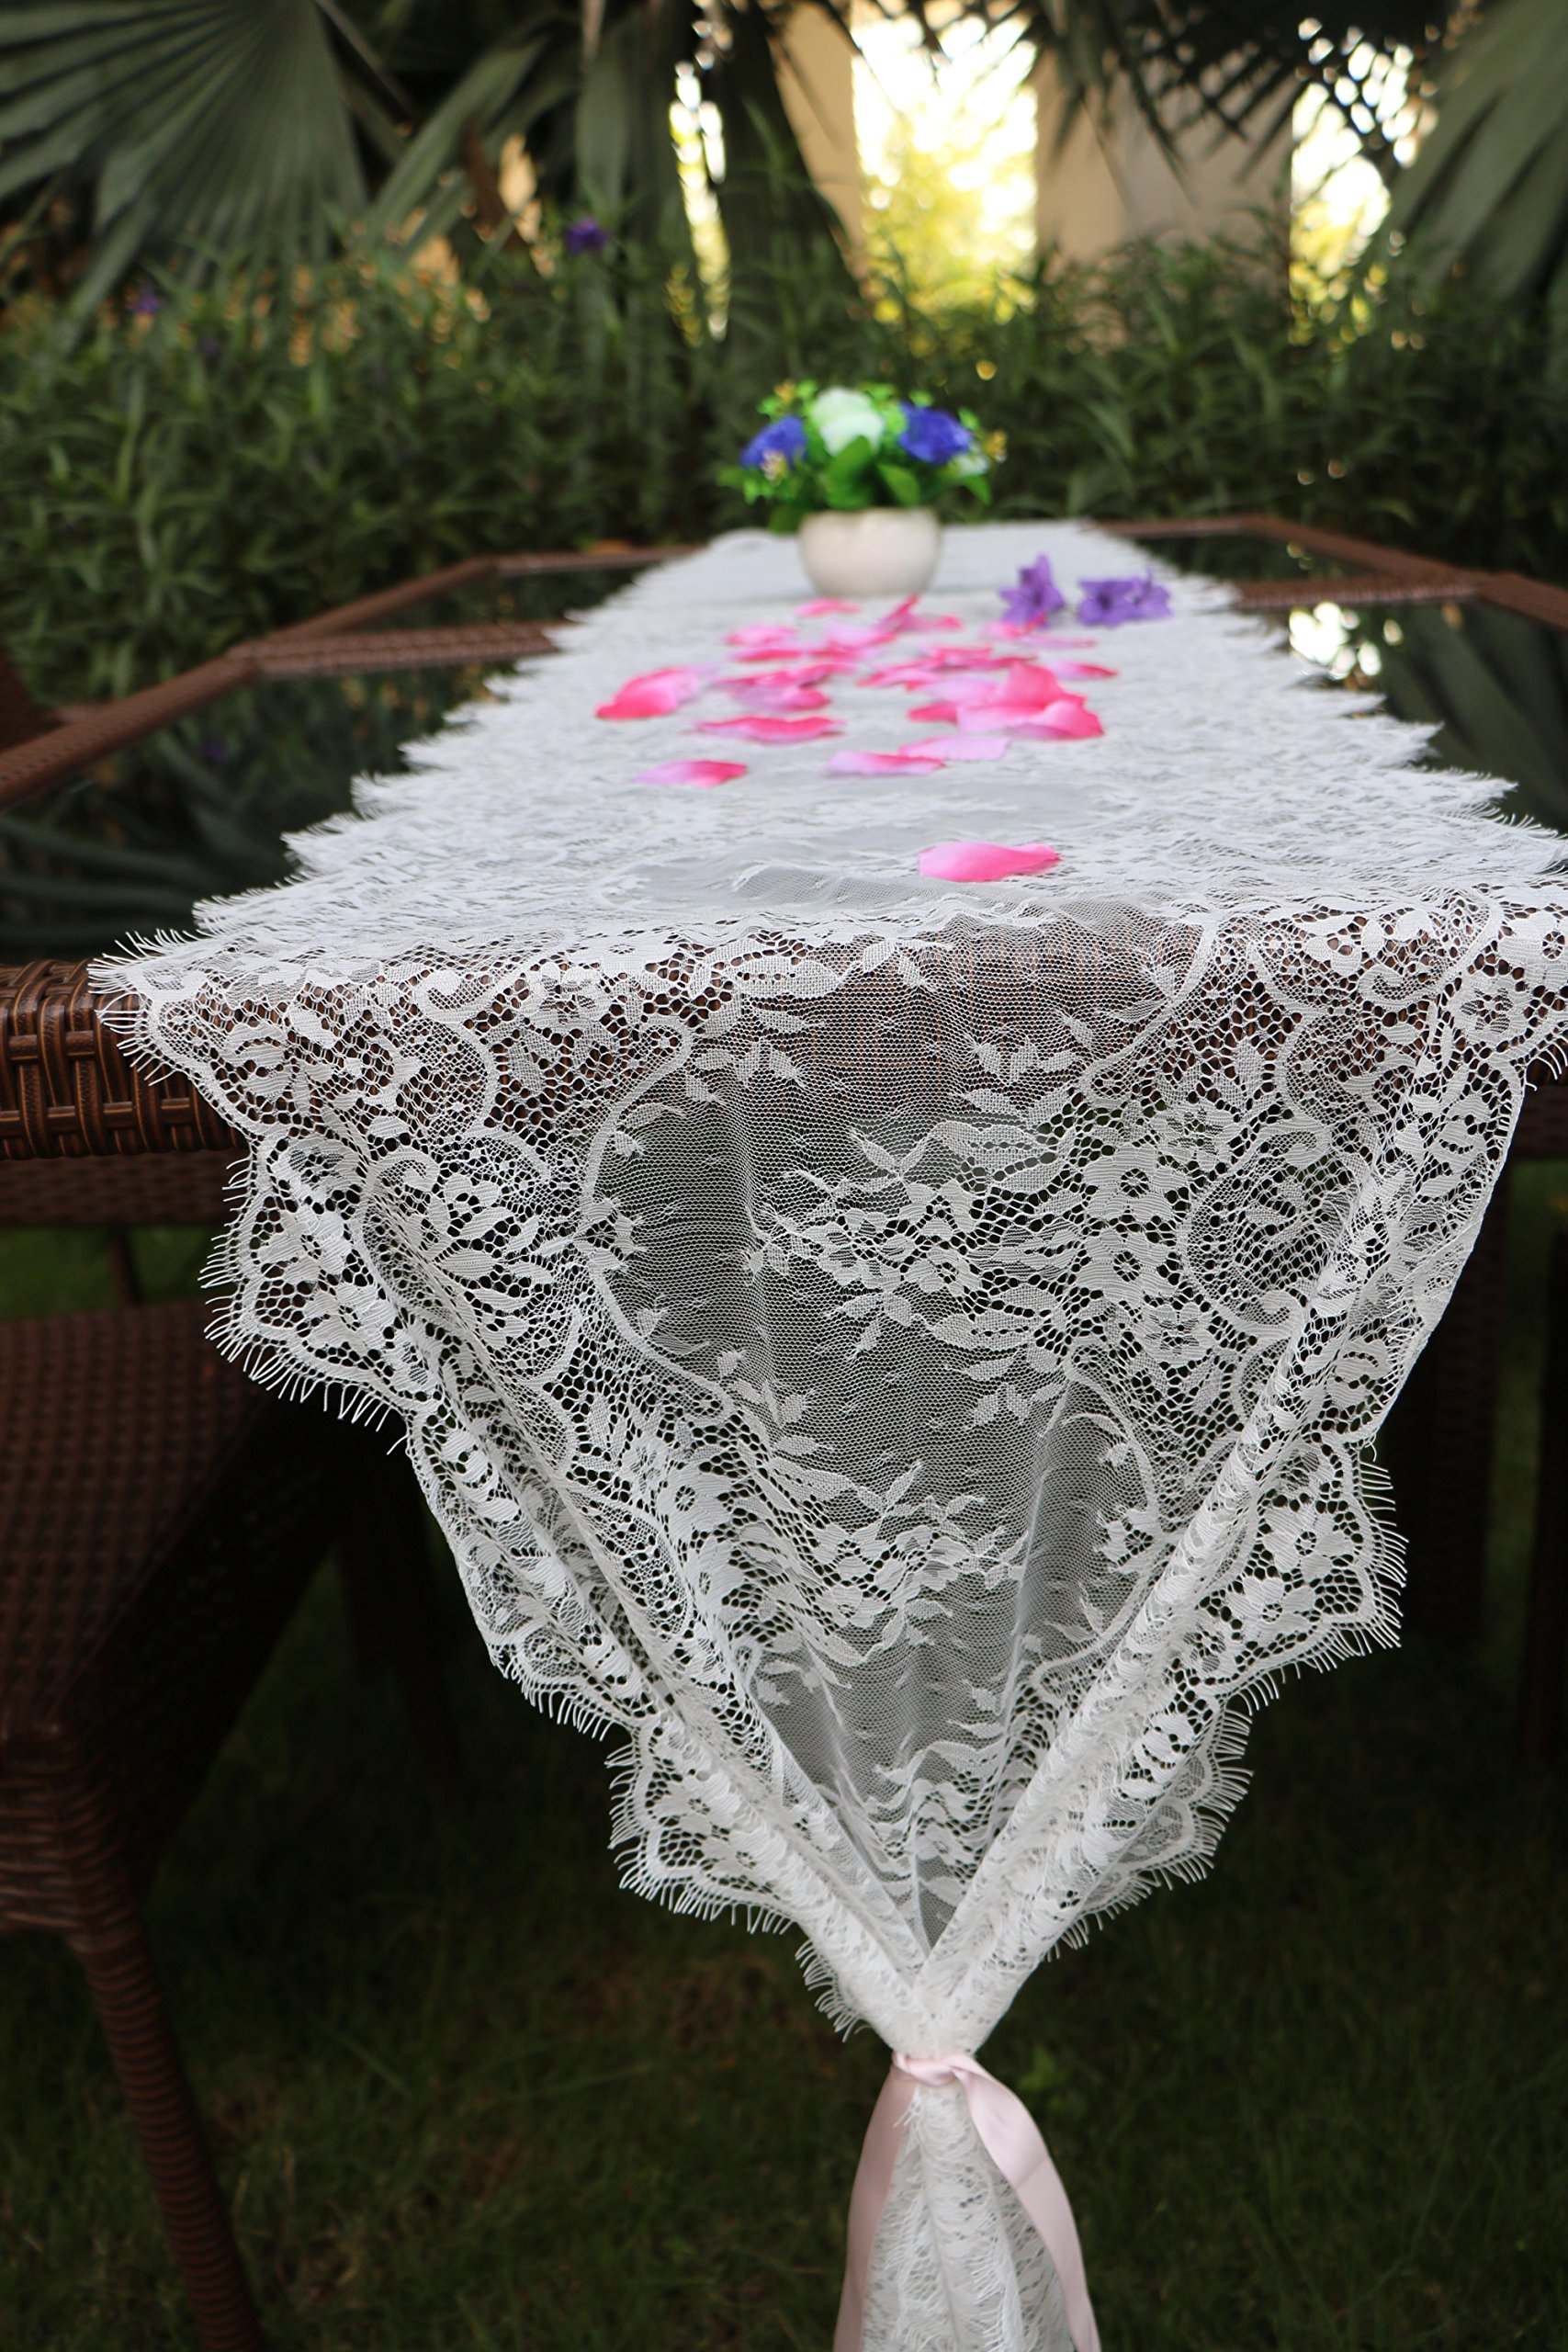 sweet dream White Lace Classic Table Runner 10Ft 16x120inches for Wedding Party, Birthday Party, Boho Party Decor, Baby Shower Bridal Shower Vintage Rustic